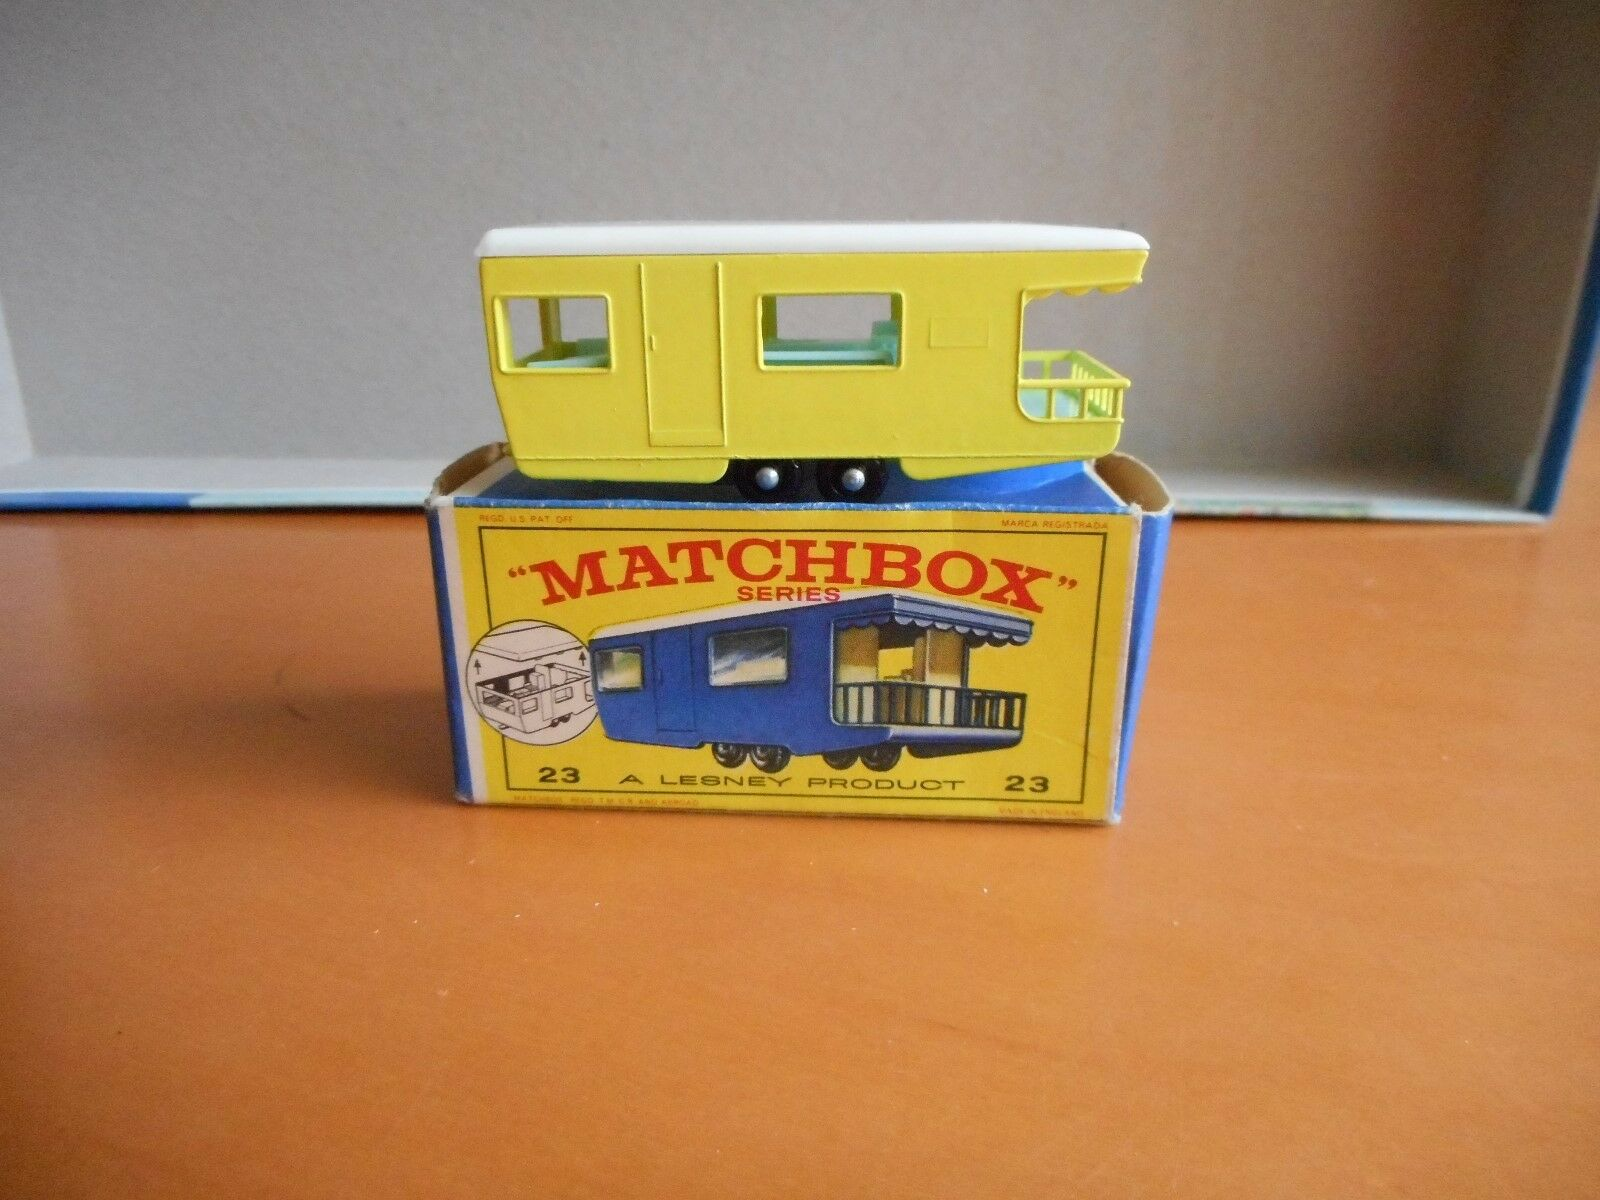 Matchbox Series 23 A Lesney Product Trailer Caravan Caravan Caravan new model and box 636c54